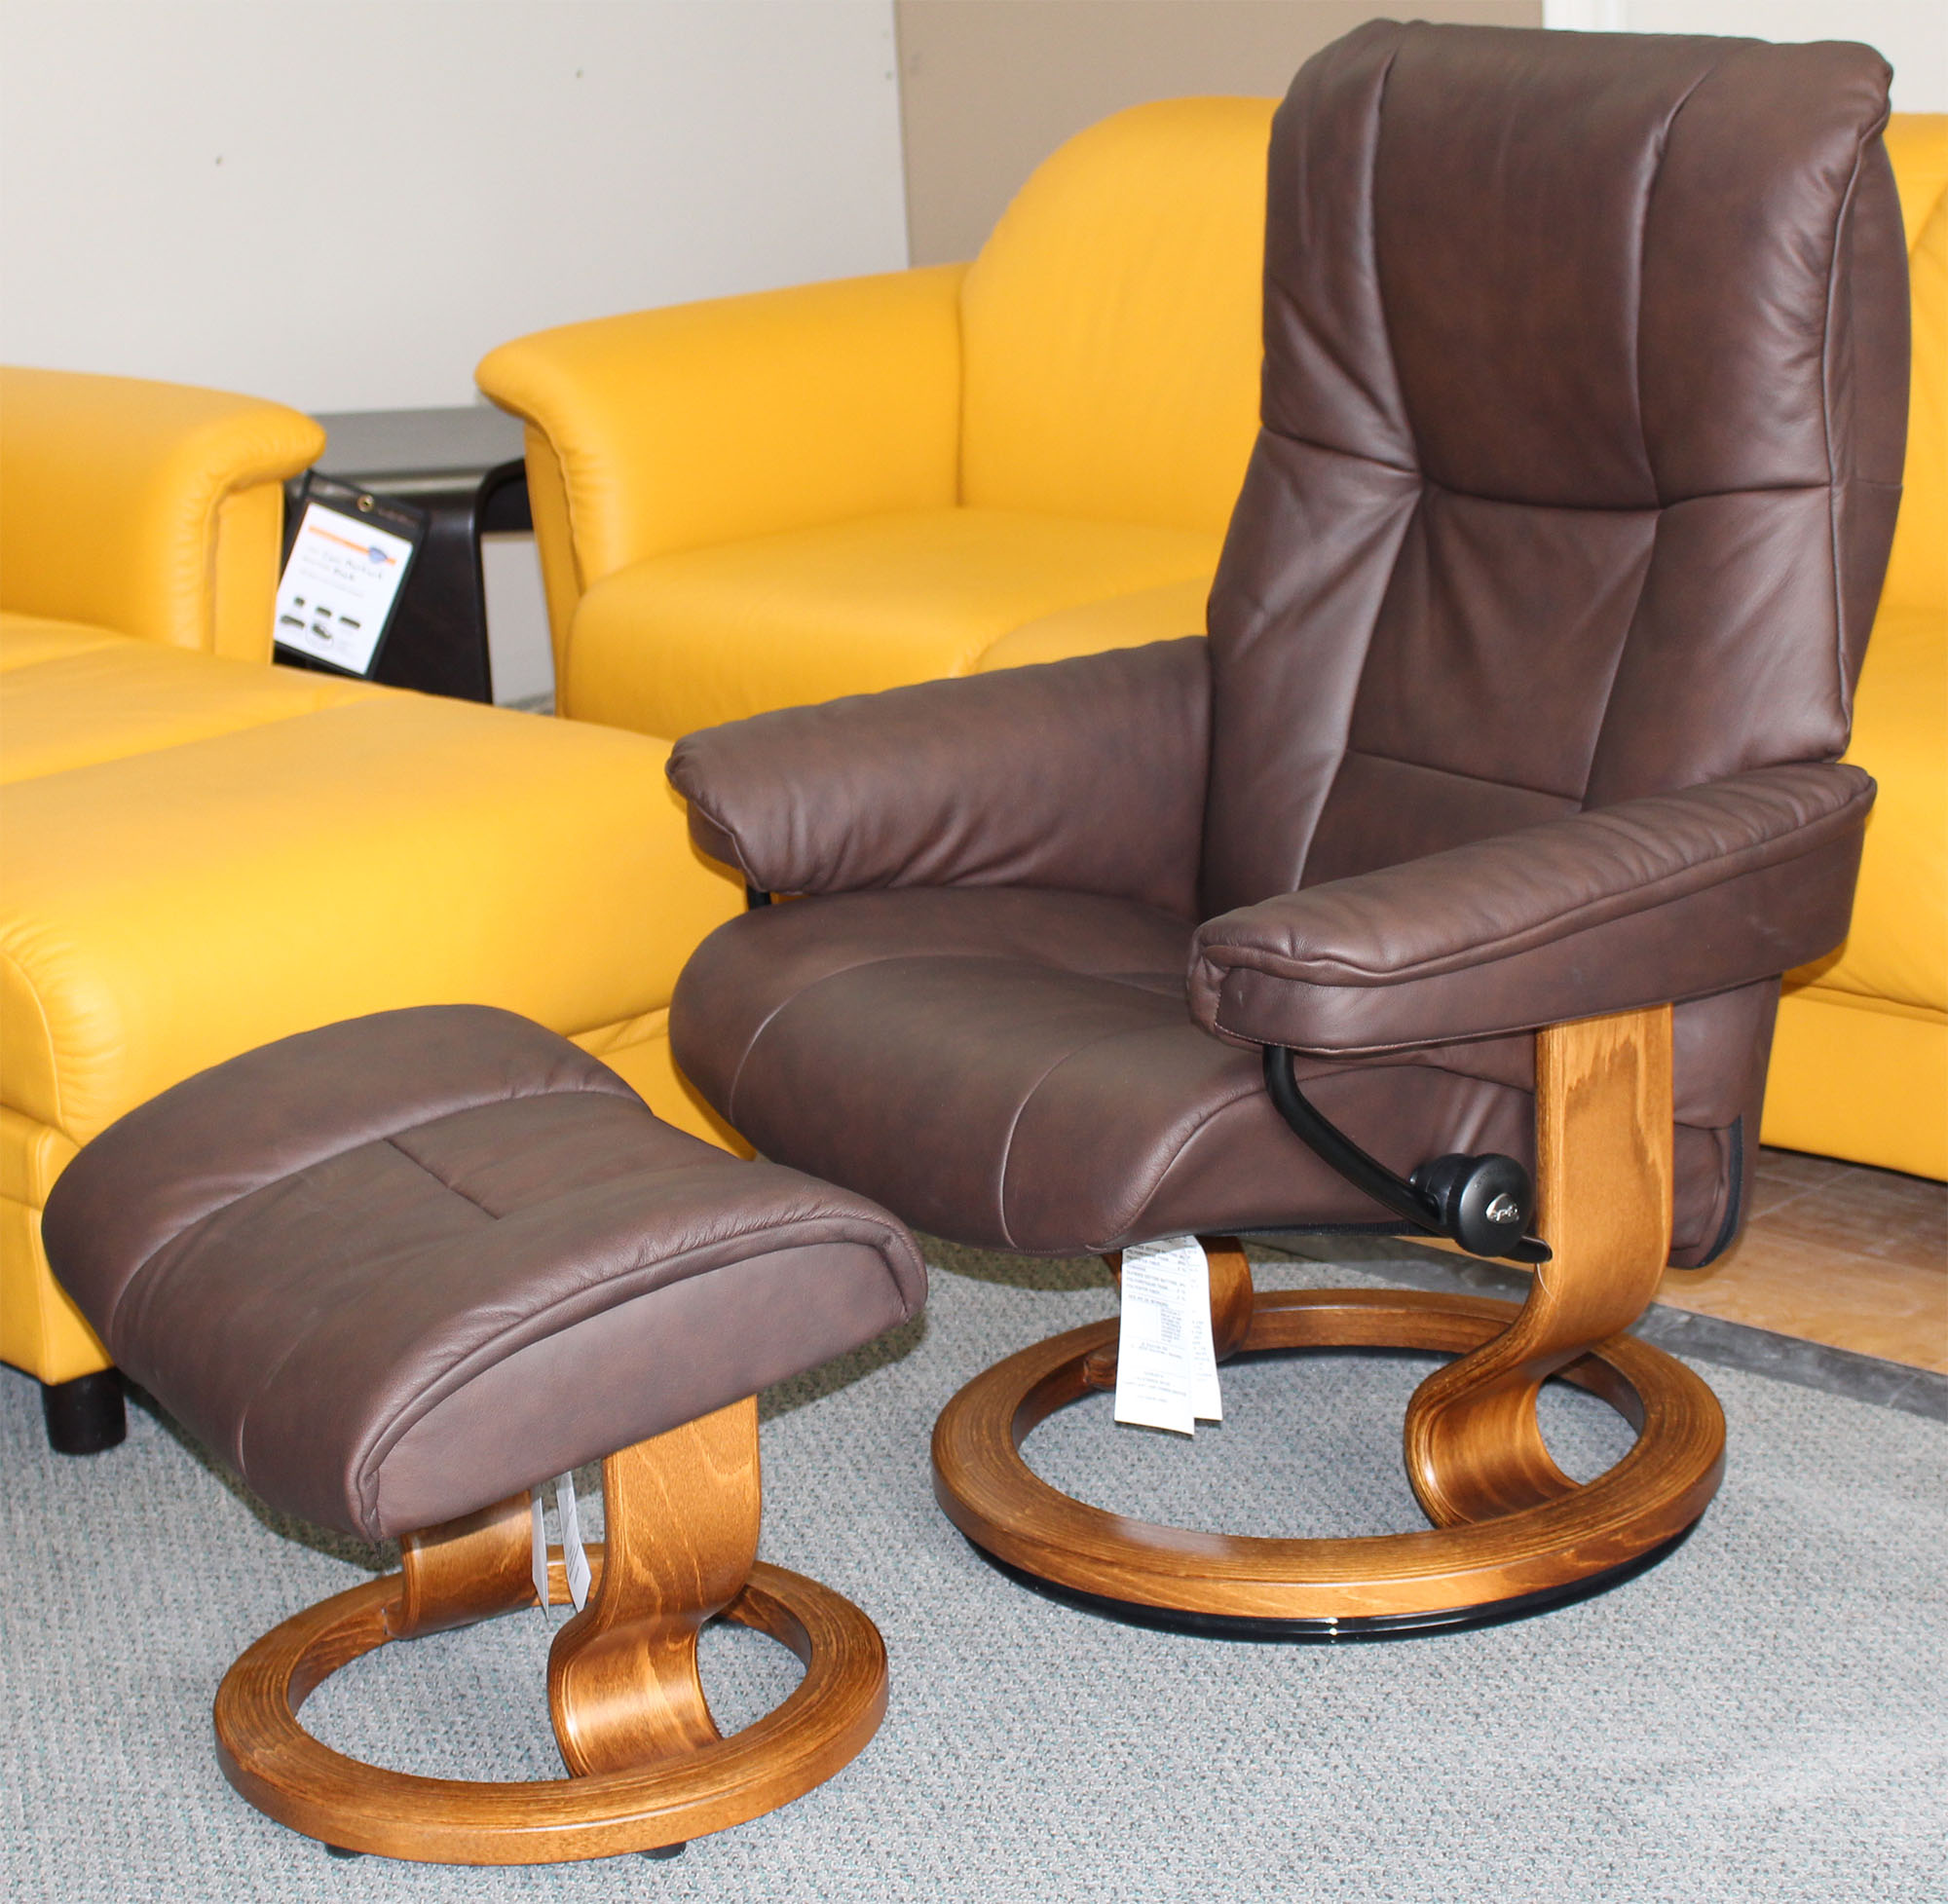 stressless chelsea small mayfair paloma chocolate leather recliner